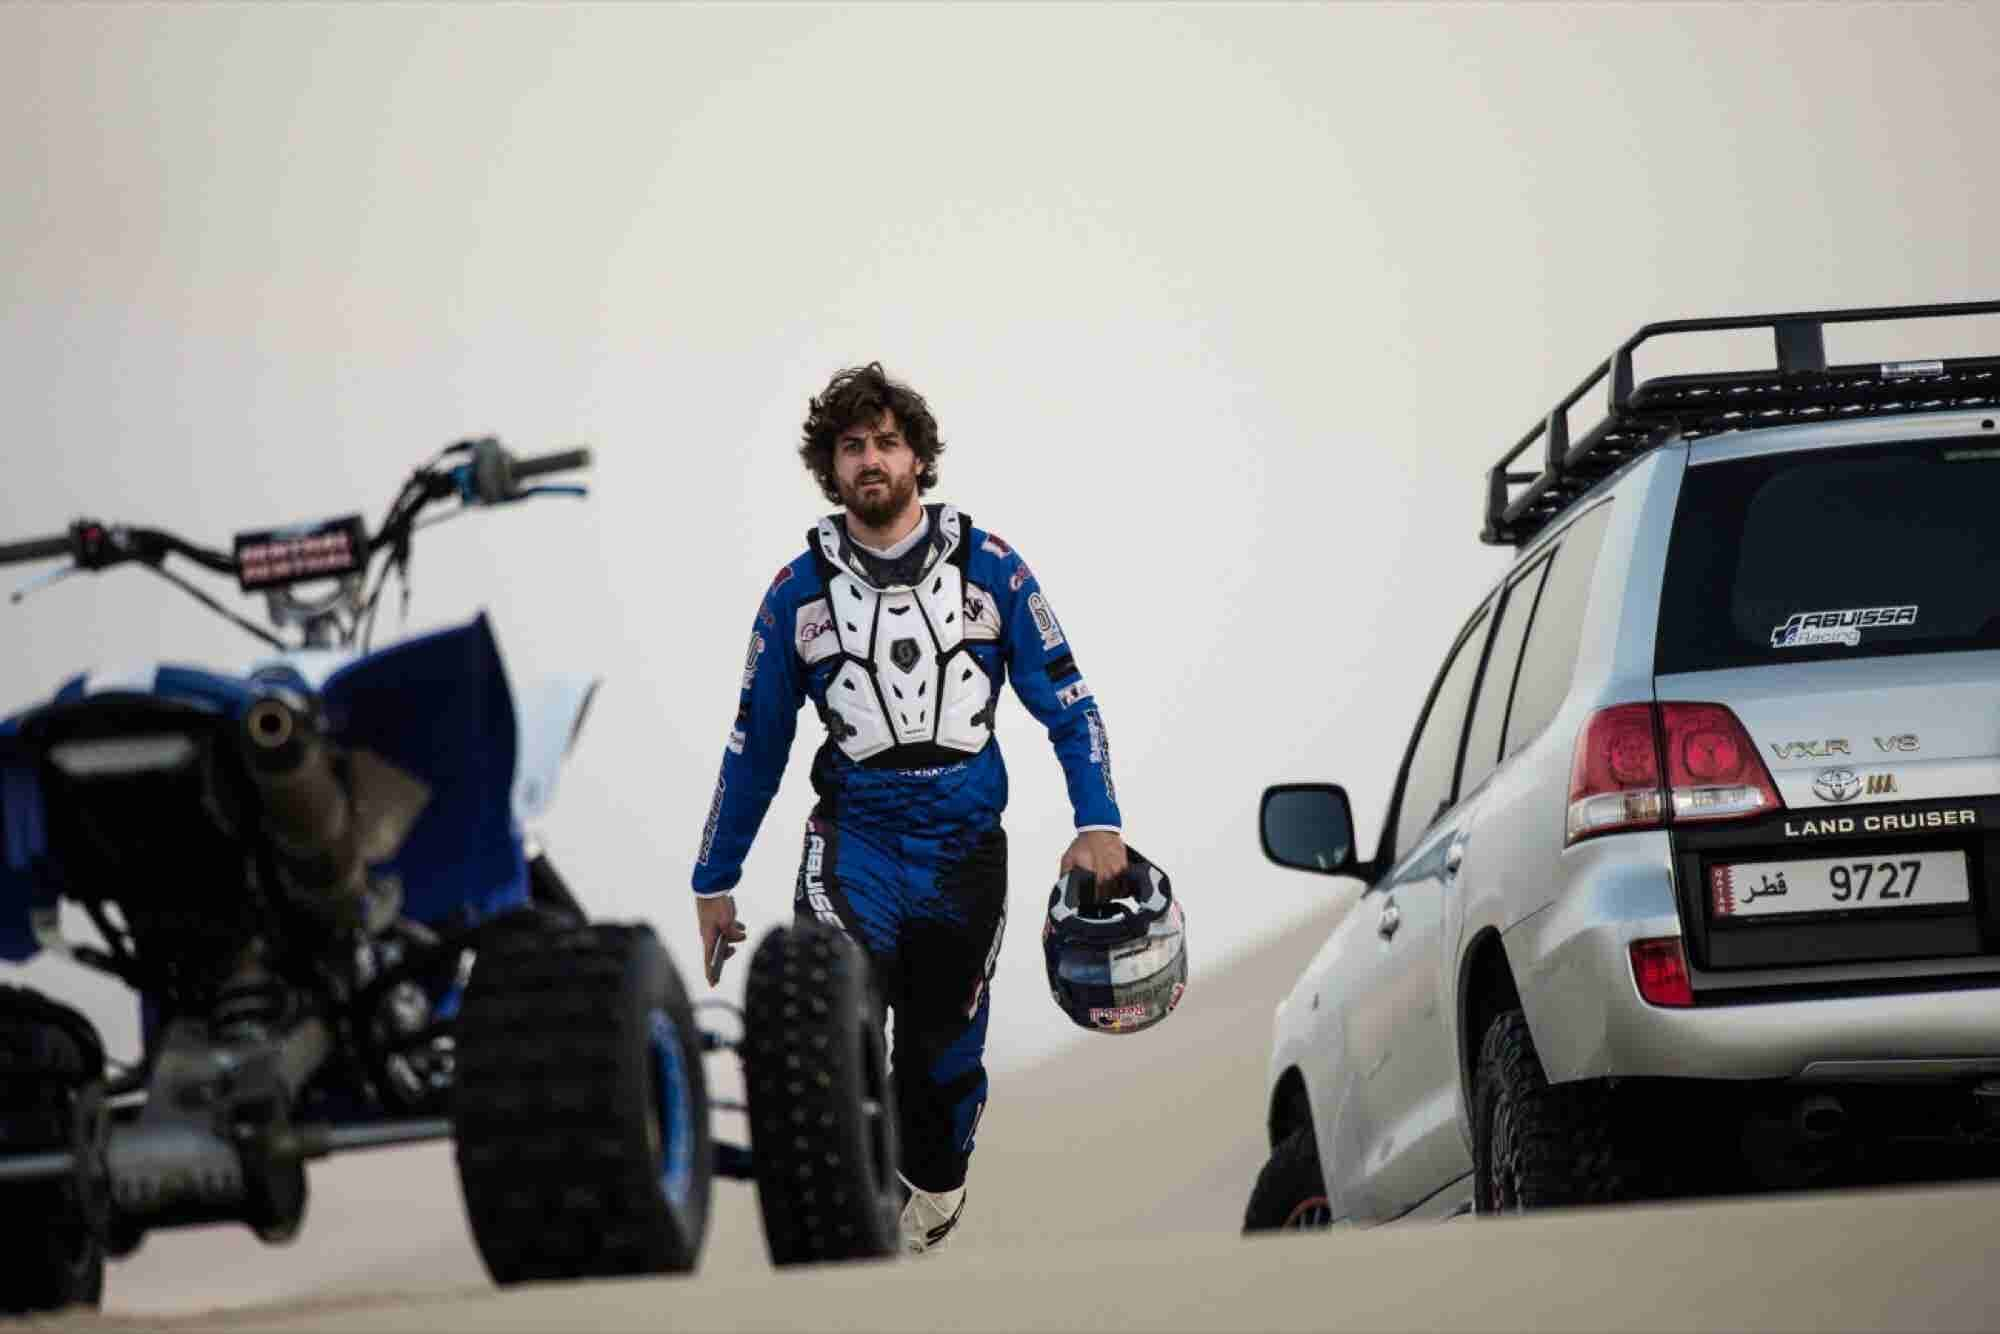 From Quad Racer to Investor and Entrepreneur: Mohamed Abu Issa Sets His Sights High